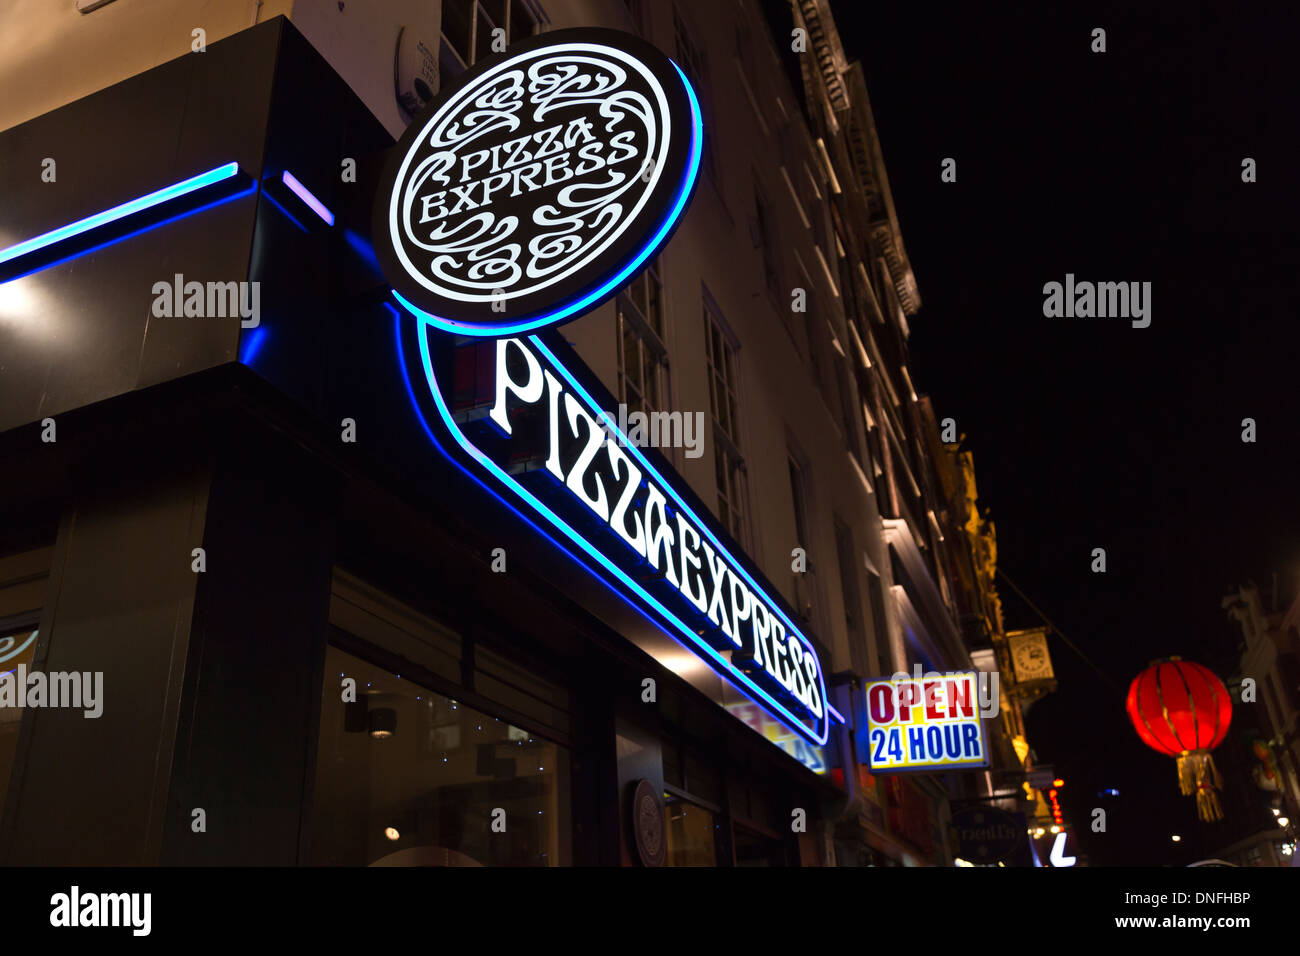 Pizza Express in Wardour Street, London Chinatown, England - Stock Image